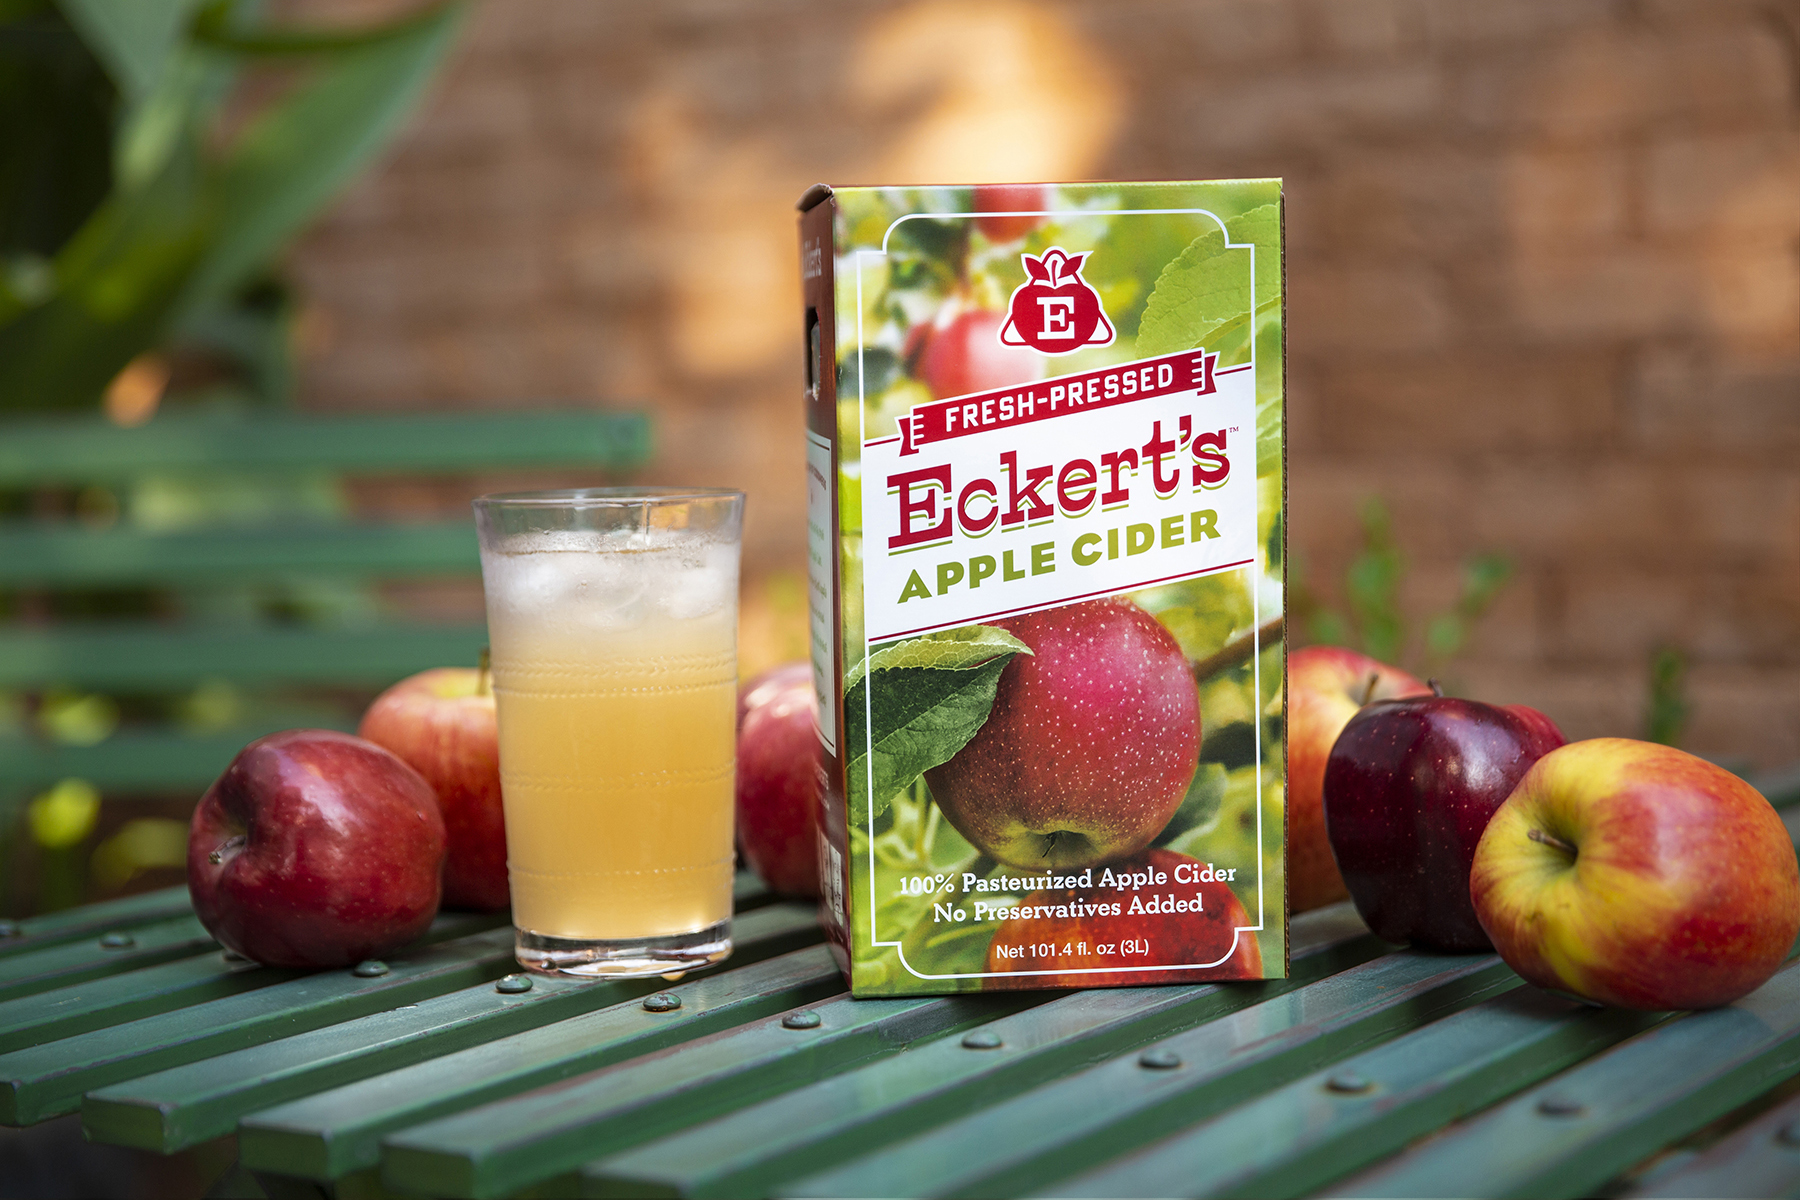 Branded apple cider packaging for Eckert's Farms